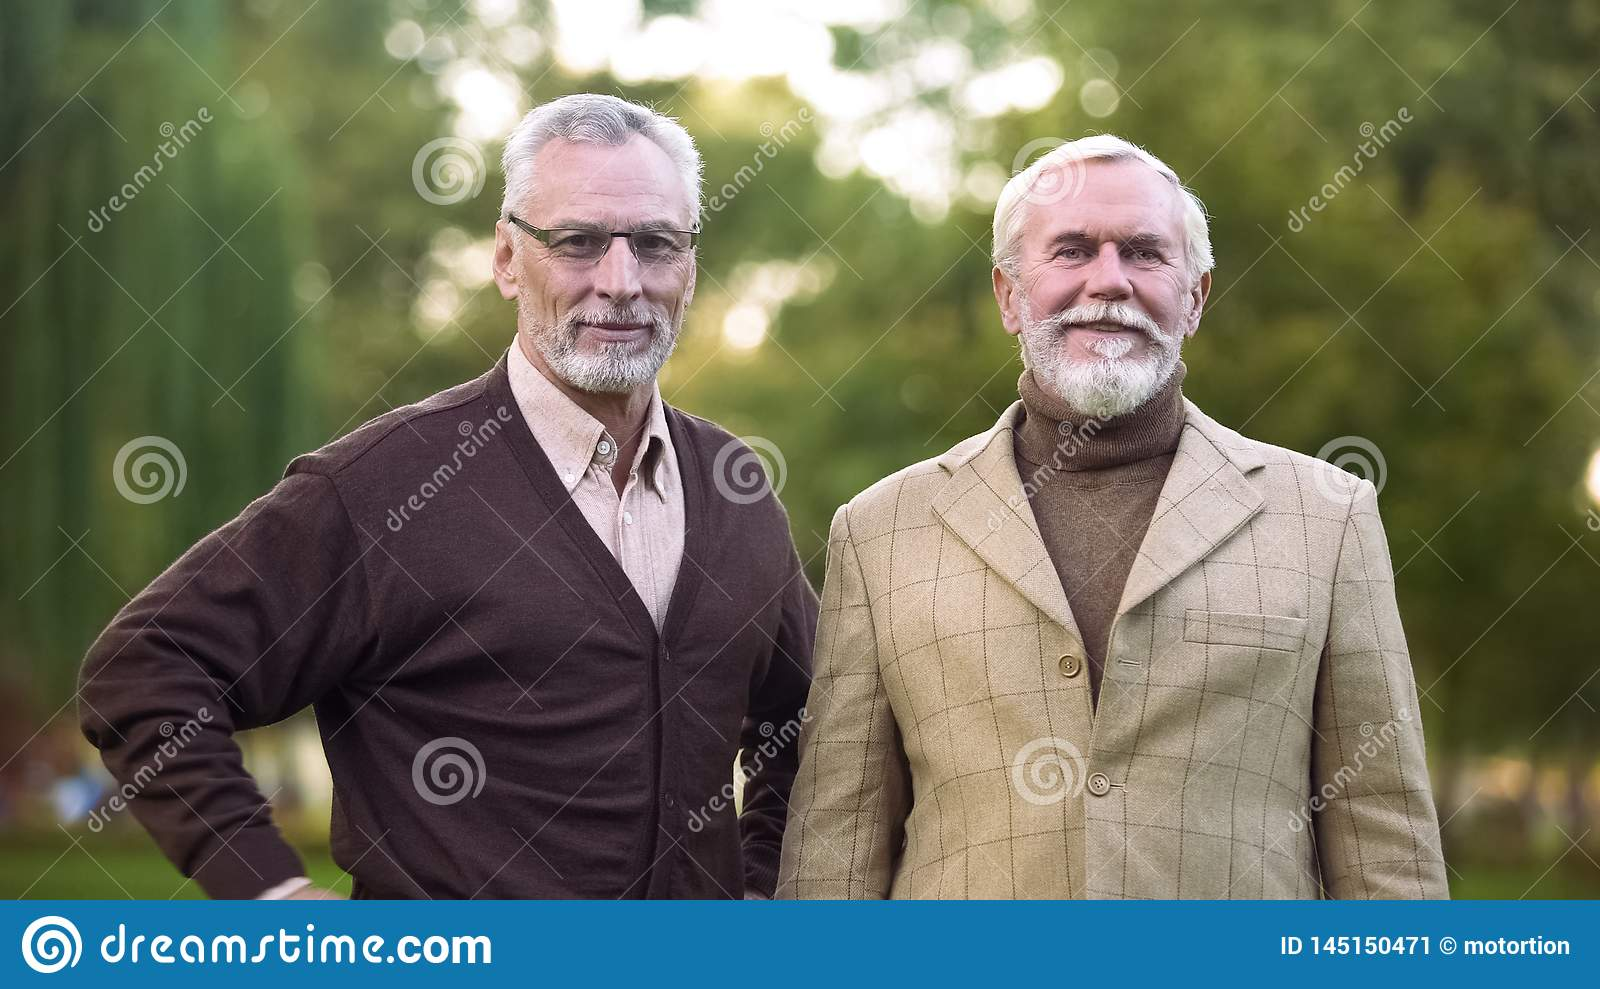 Elegant old men looking camera and smiling, happy retirement, success and wealth